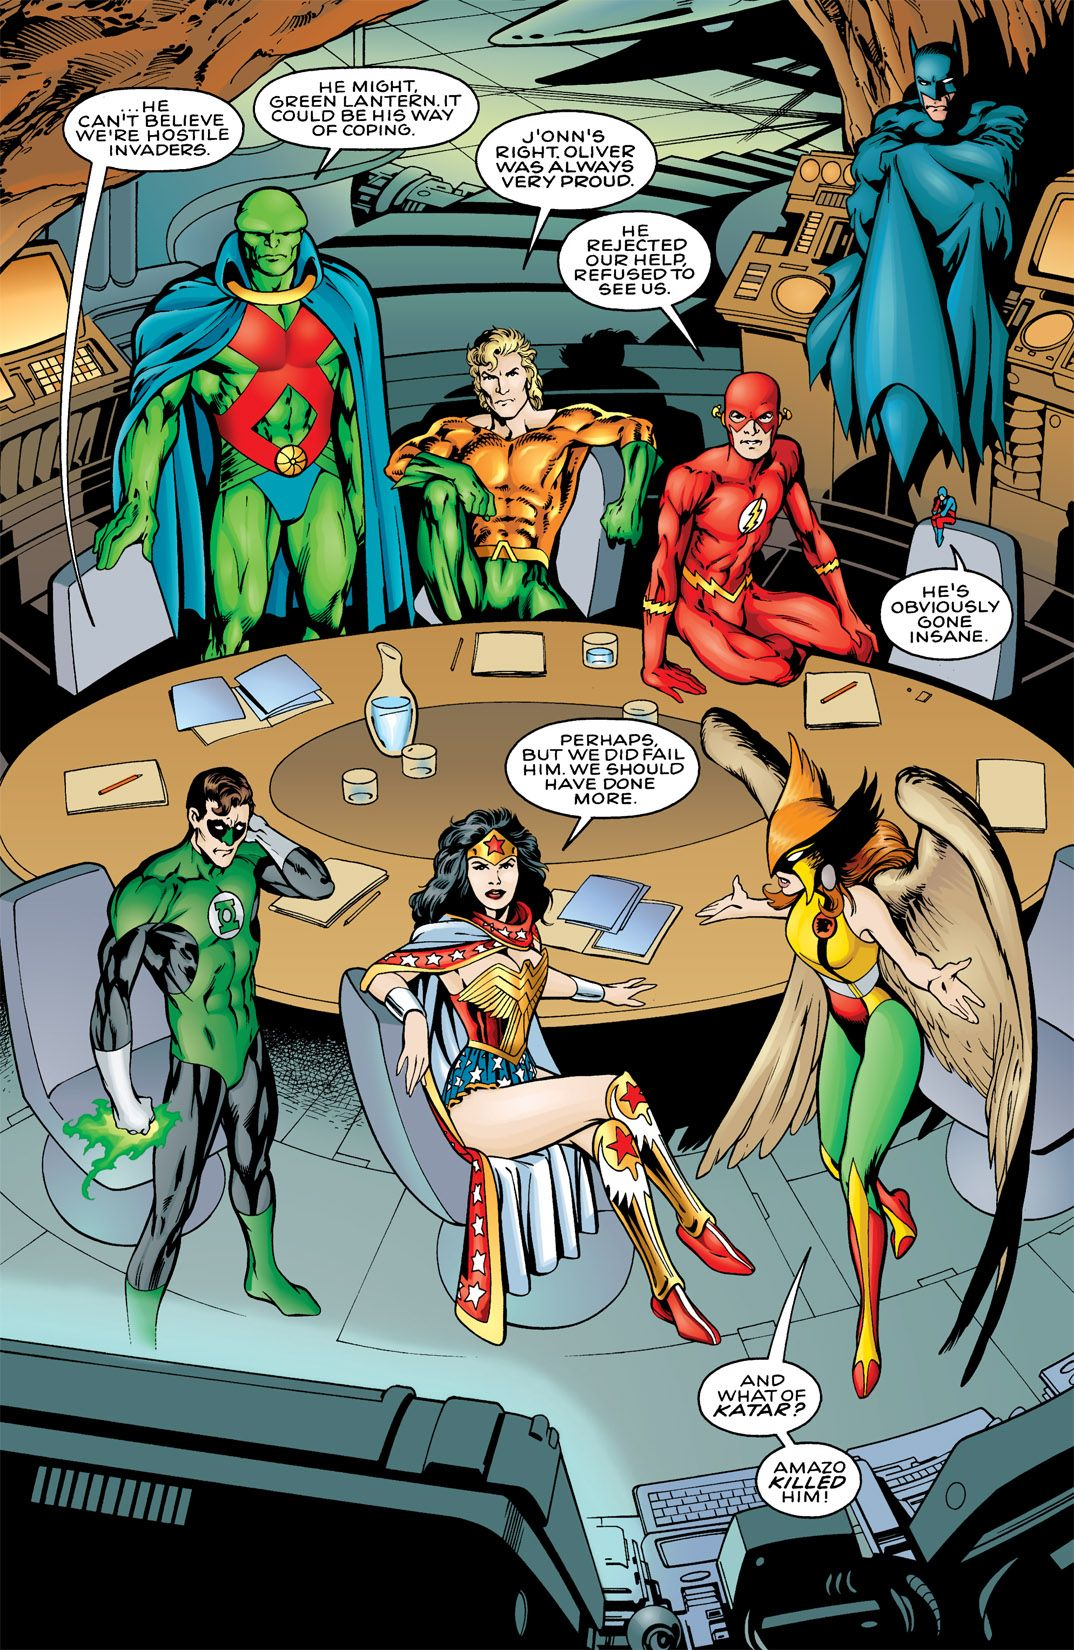 More Like A Justice League | Sequential Art | Pinterest | Justice ...